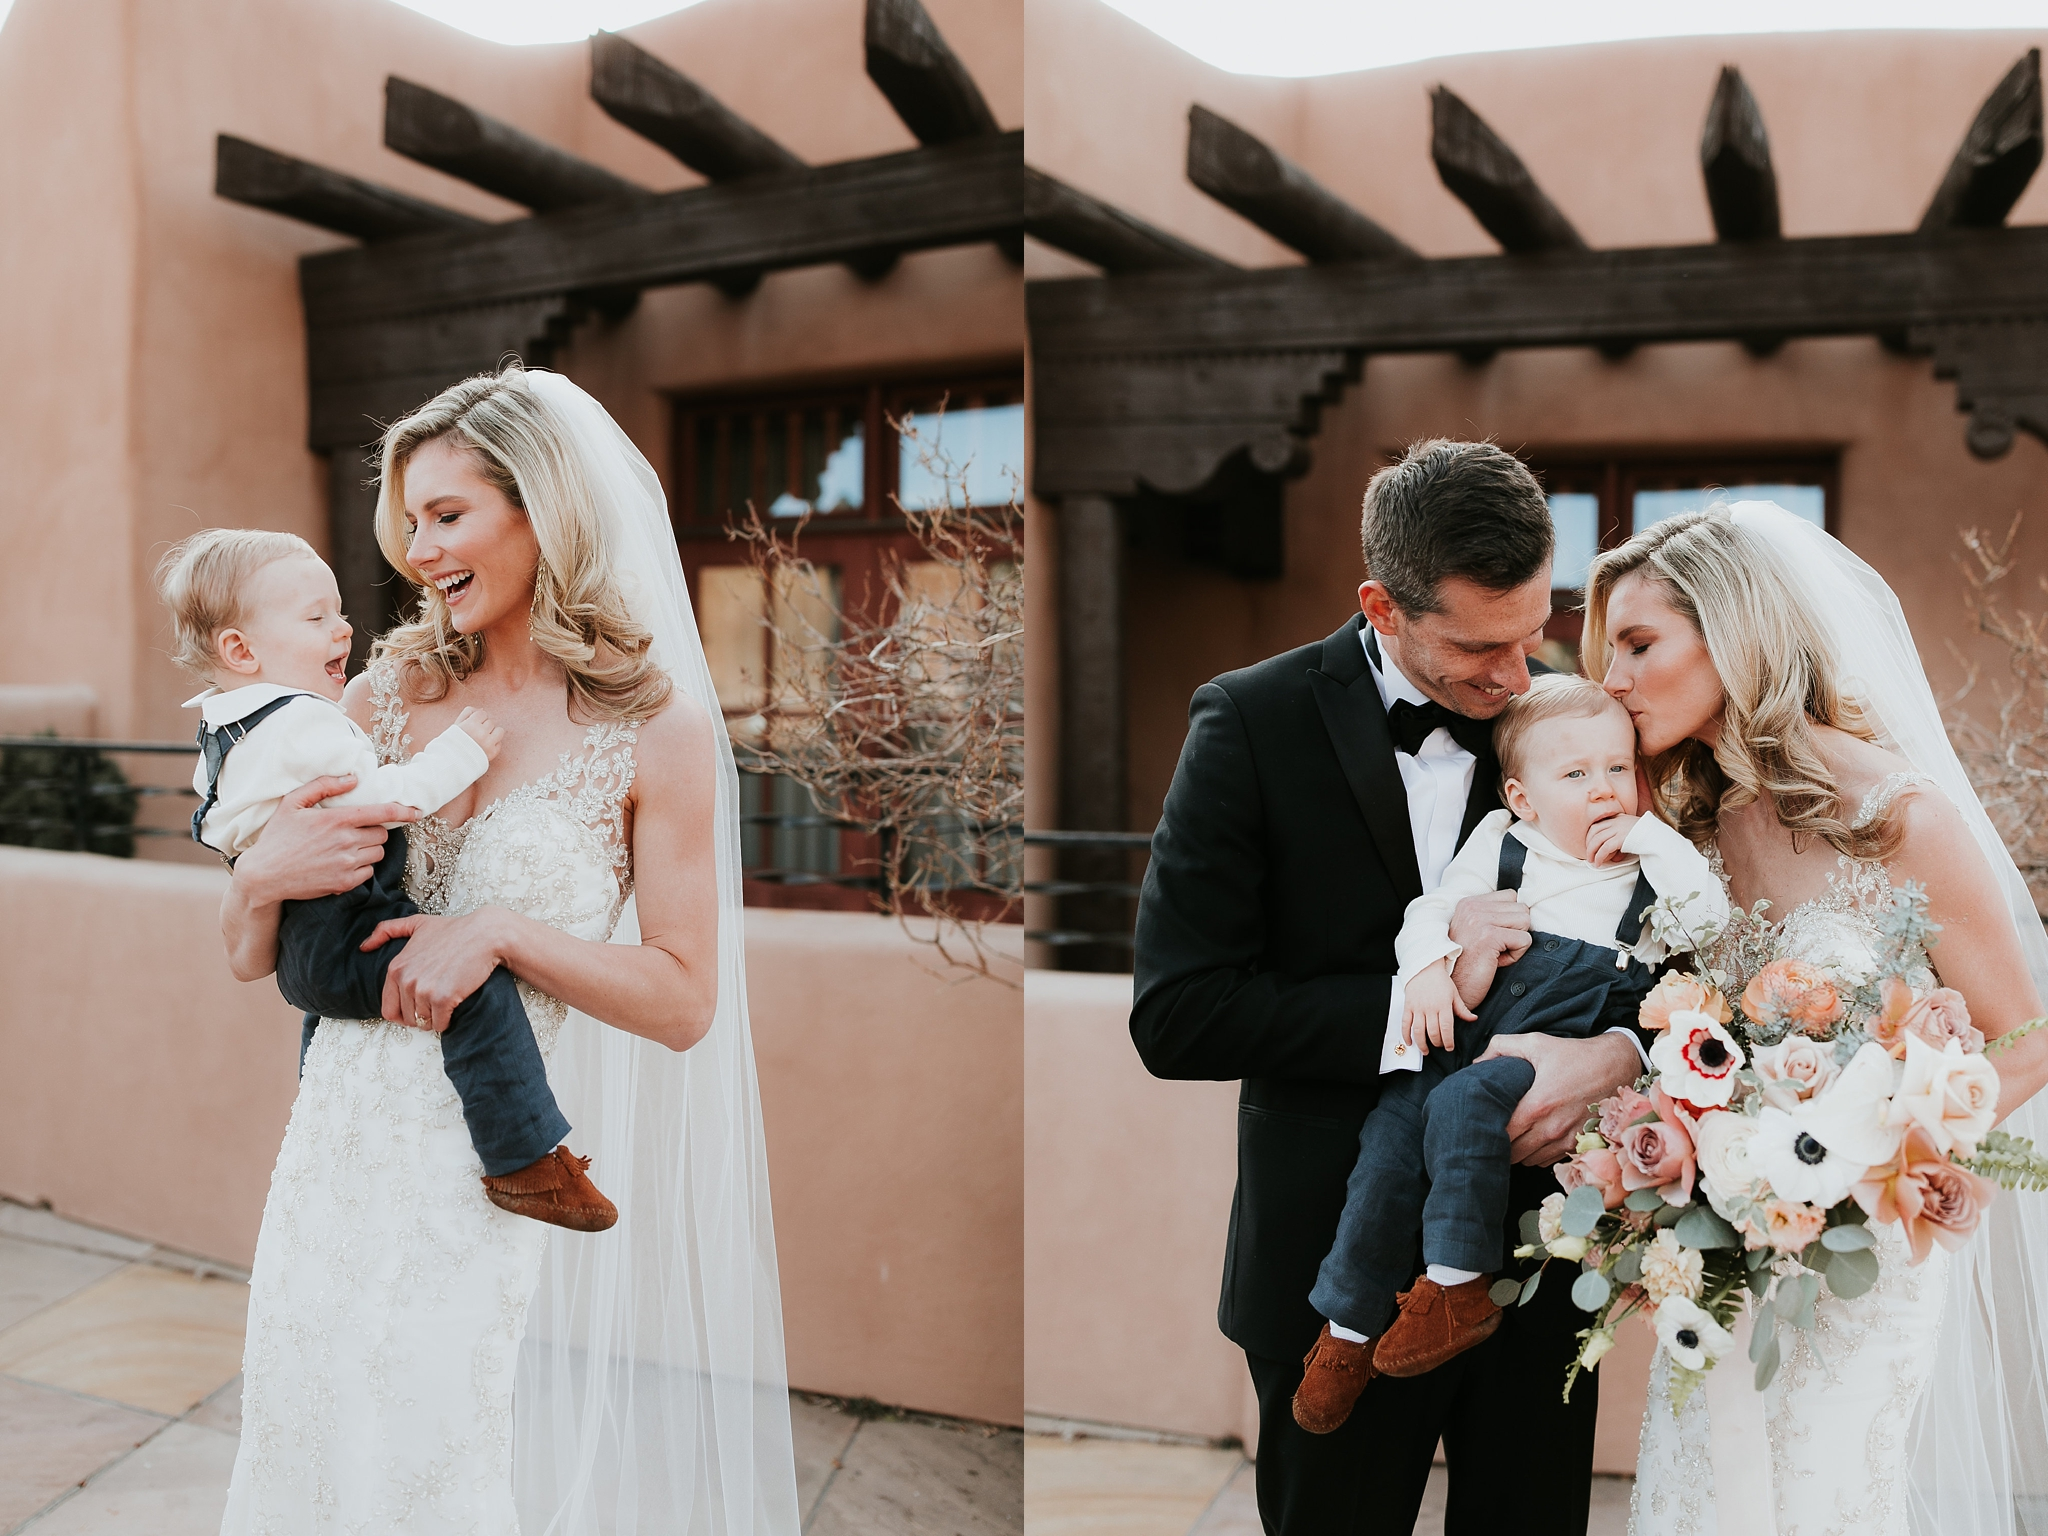 Alicia+lucia+photography+-+albuquerque+wedding+photographer+-+santa+fe+wedding+photography+-+new+mexico+wedding+photographer+-+new+mexico+wedding+-+family+photographer+-+mothers+day+-+mother+of+the+bride_0009.jpg